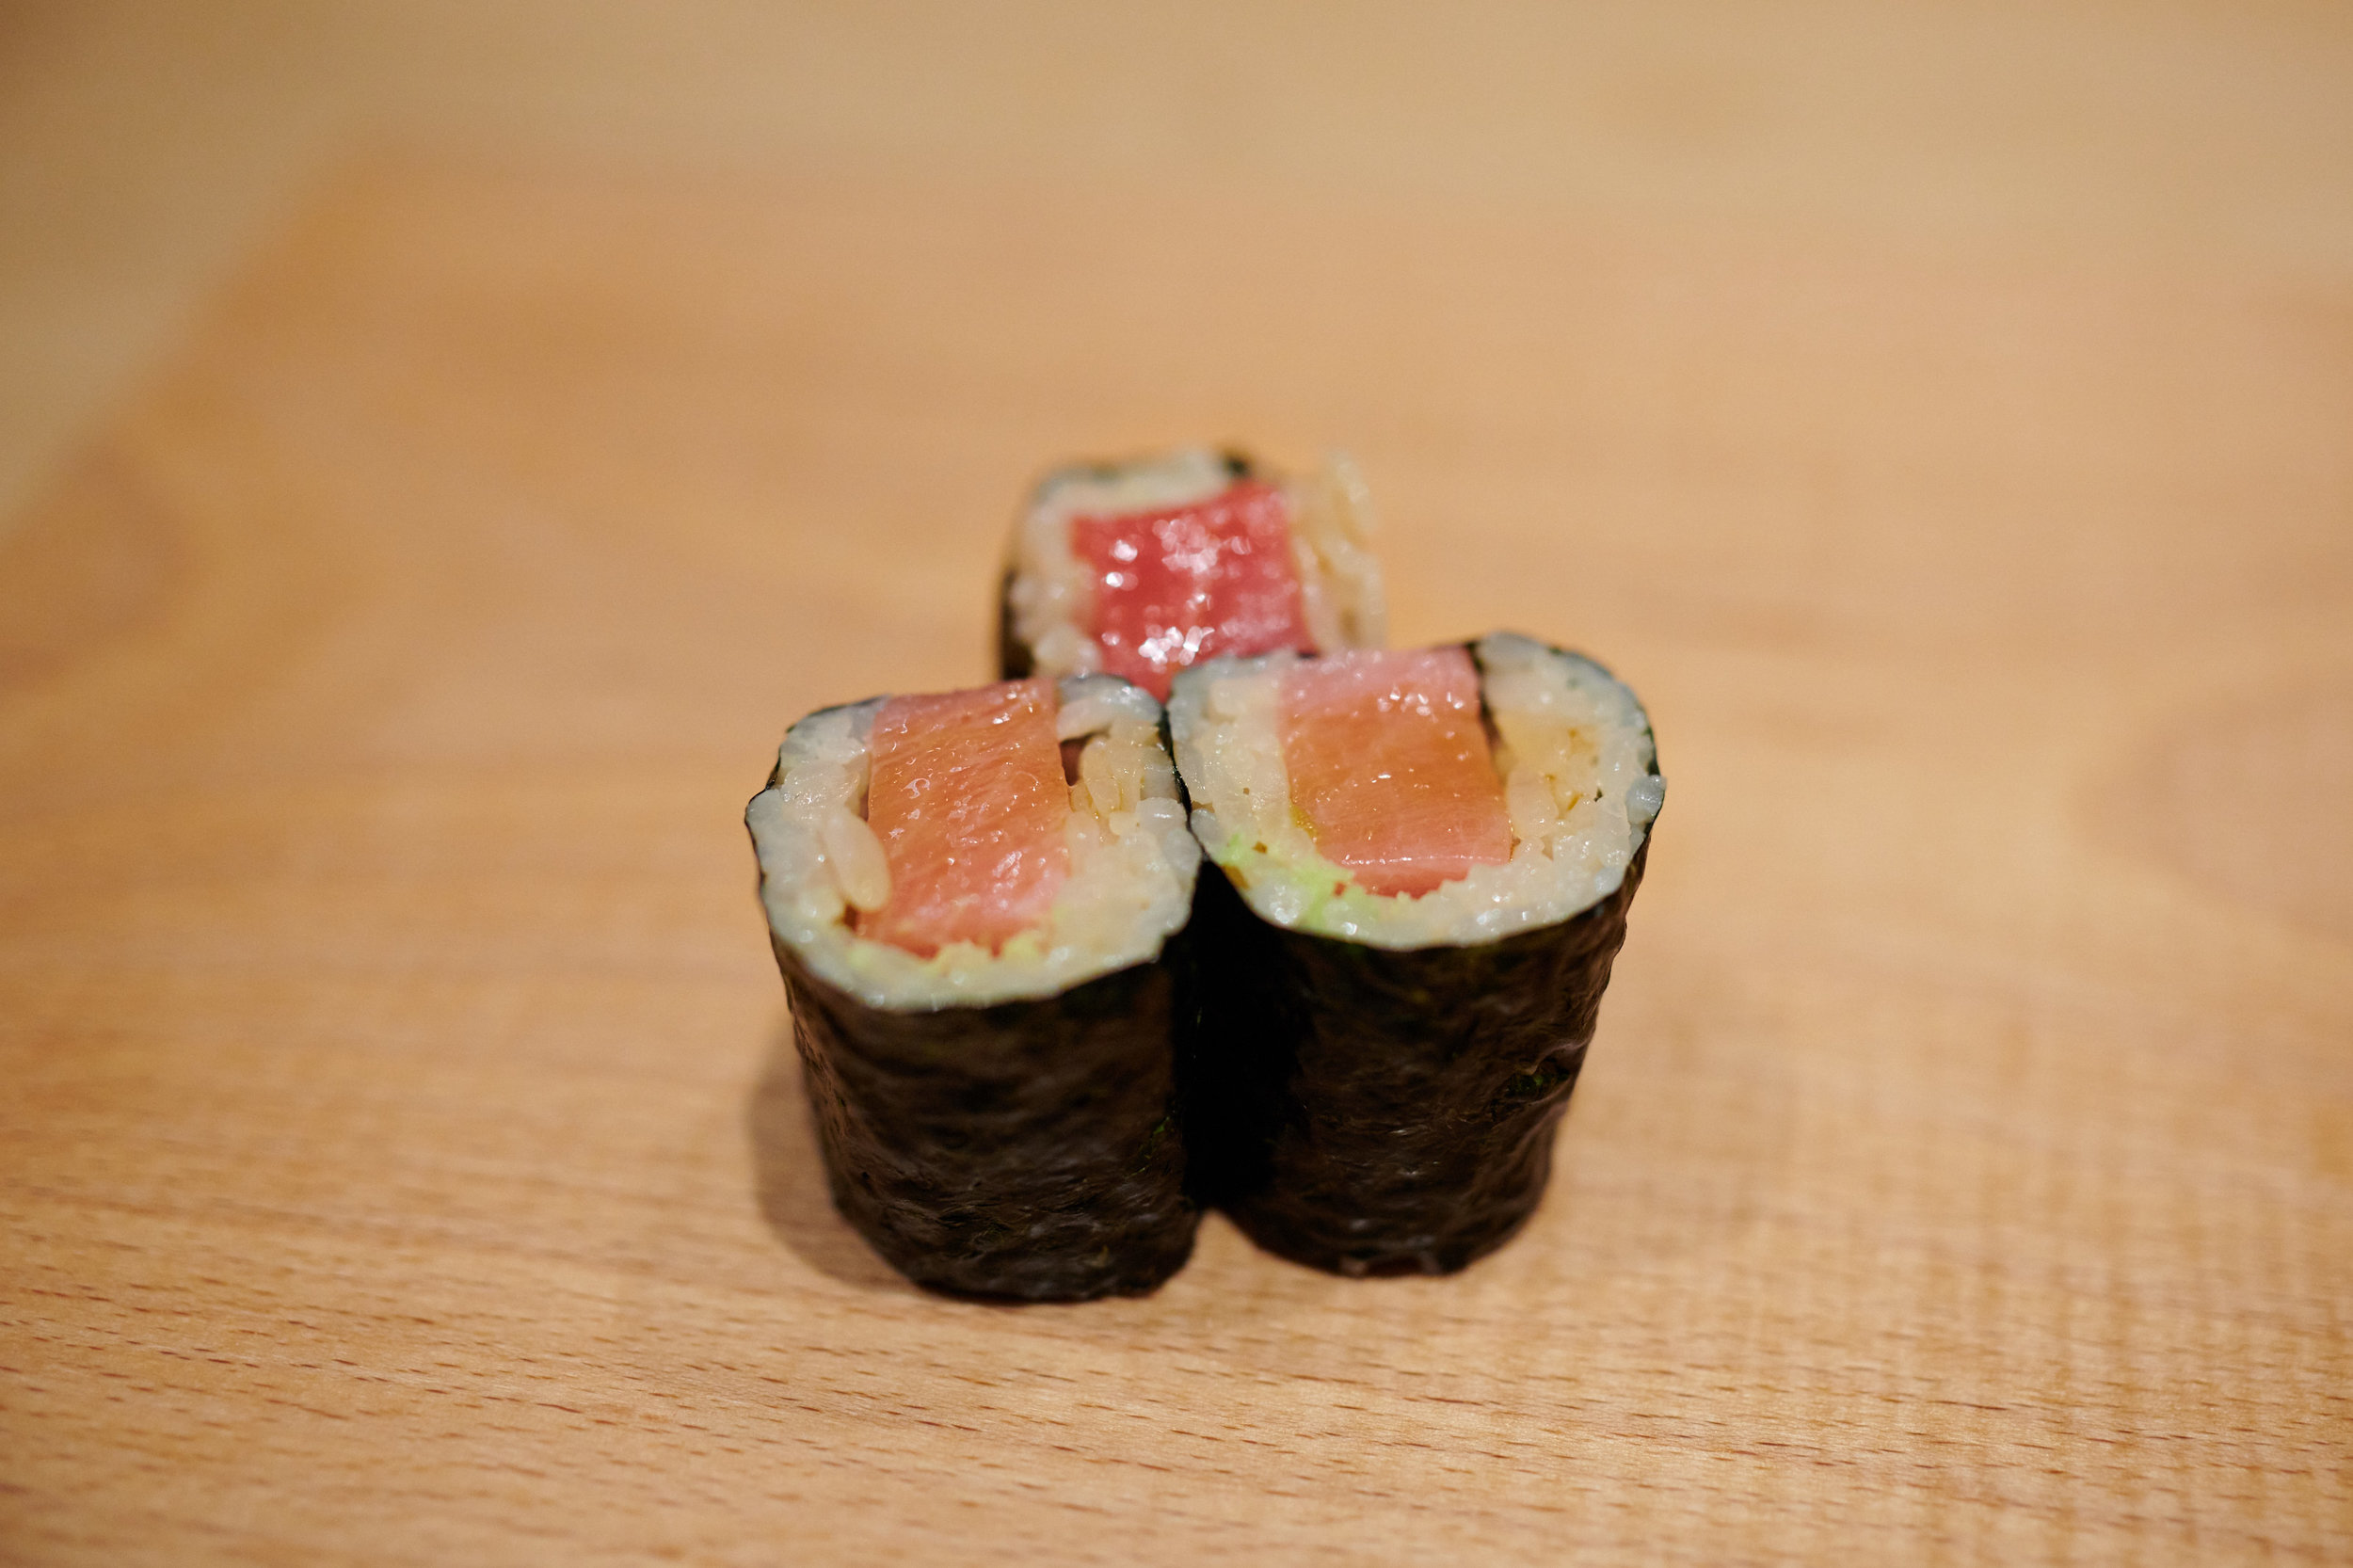 Toro maki (fatty tuna roll)